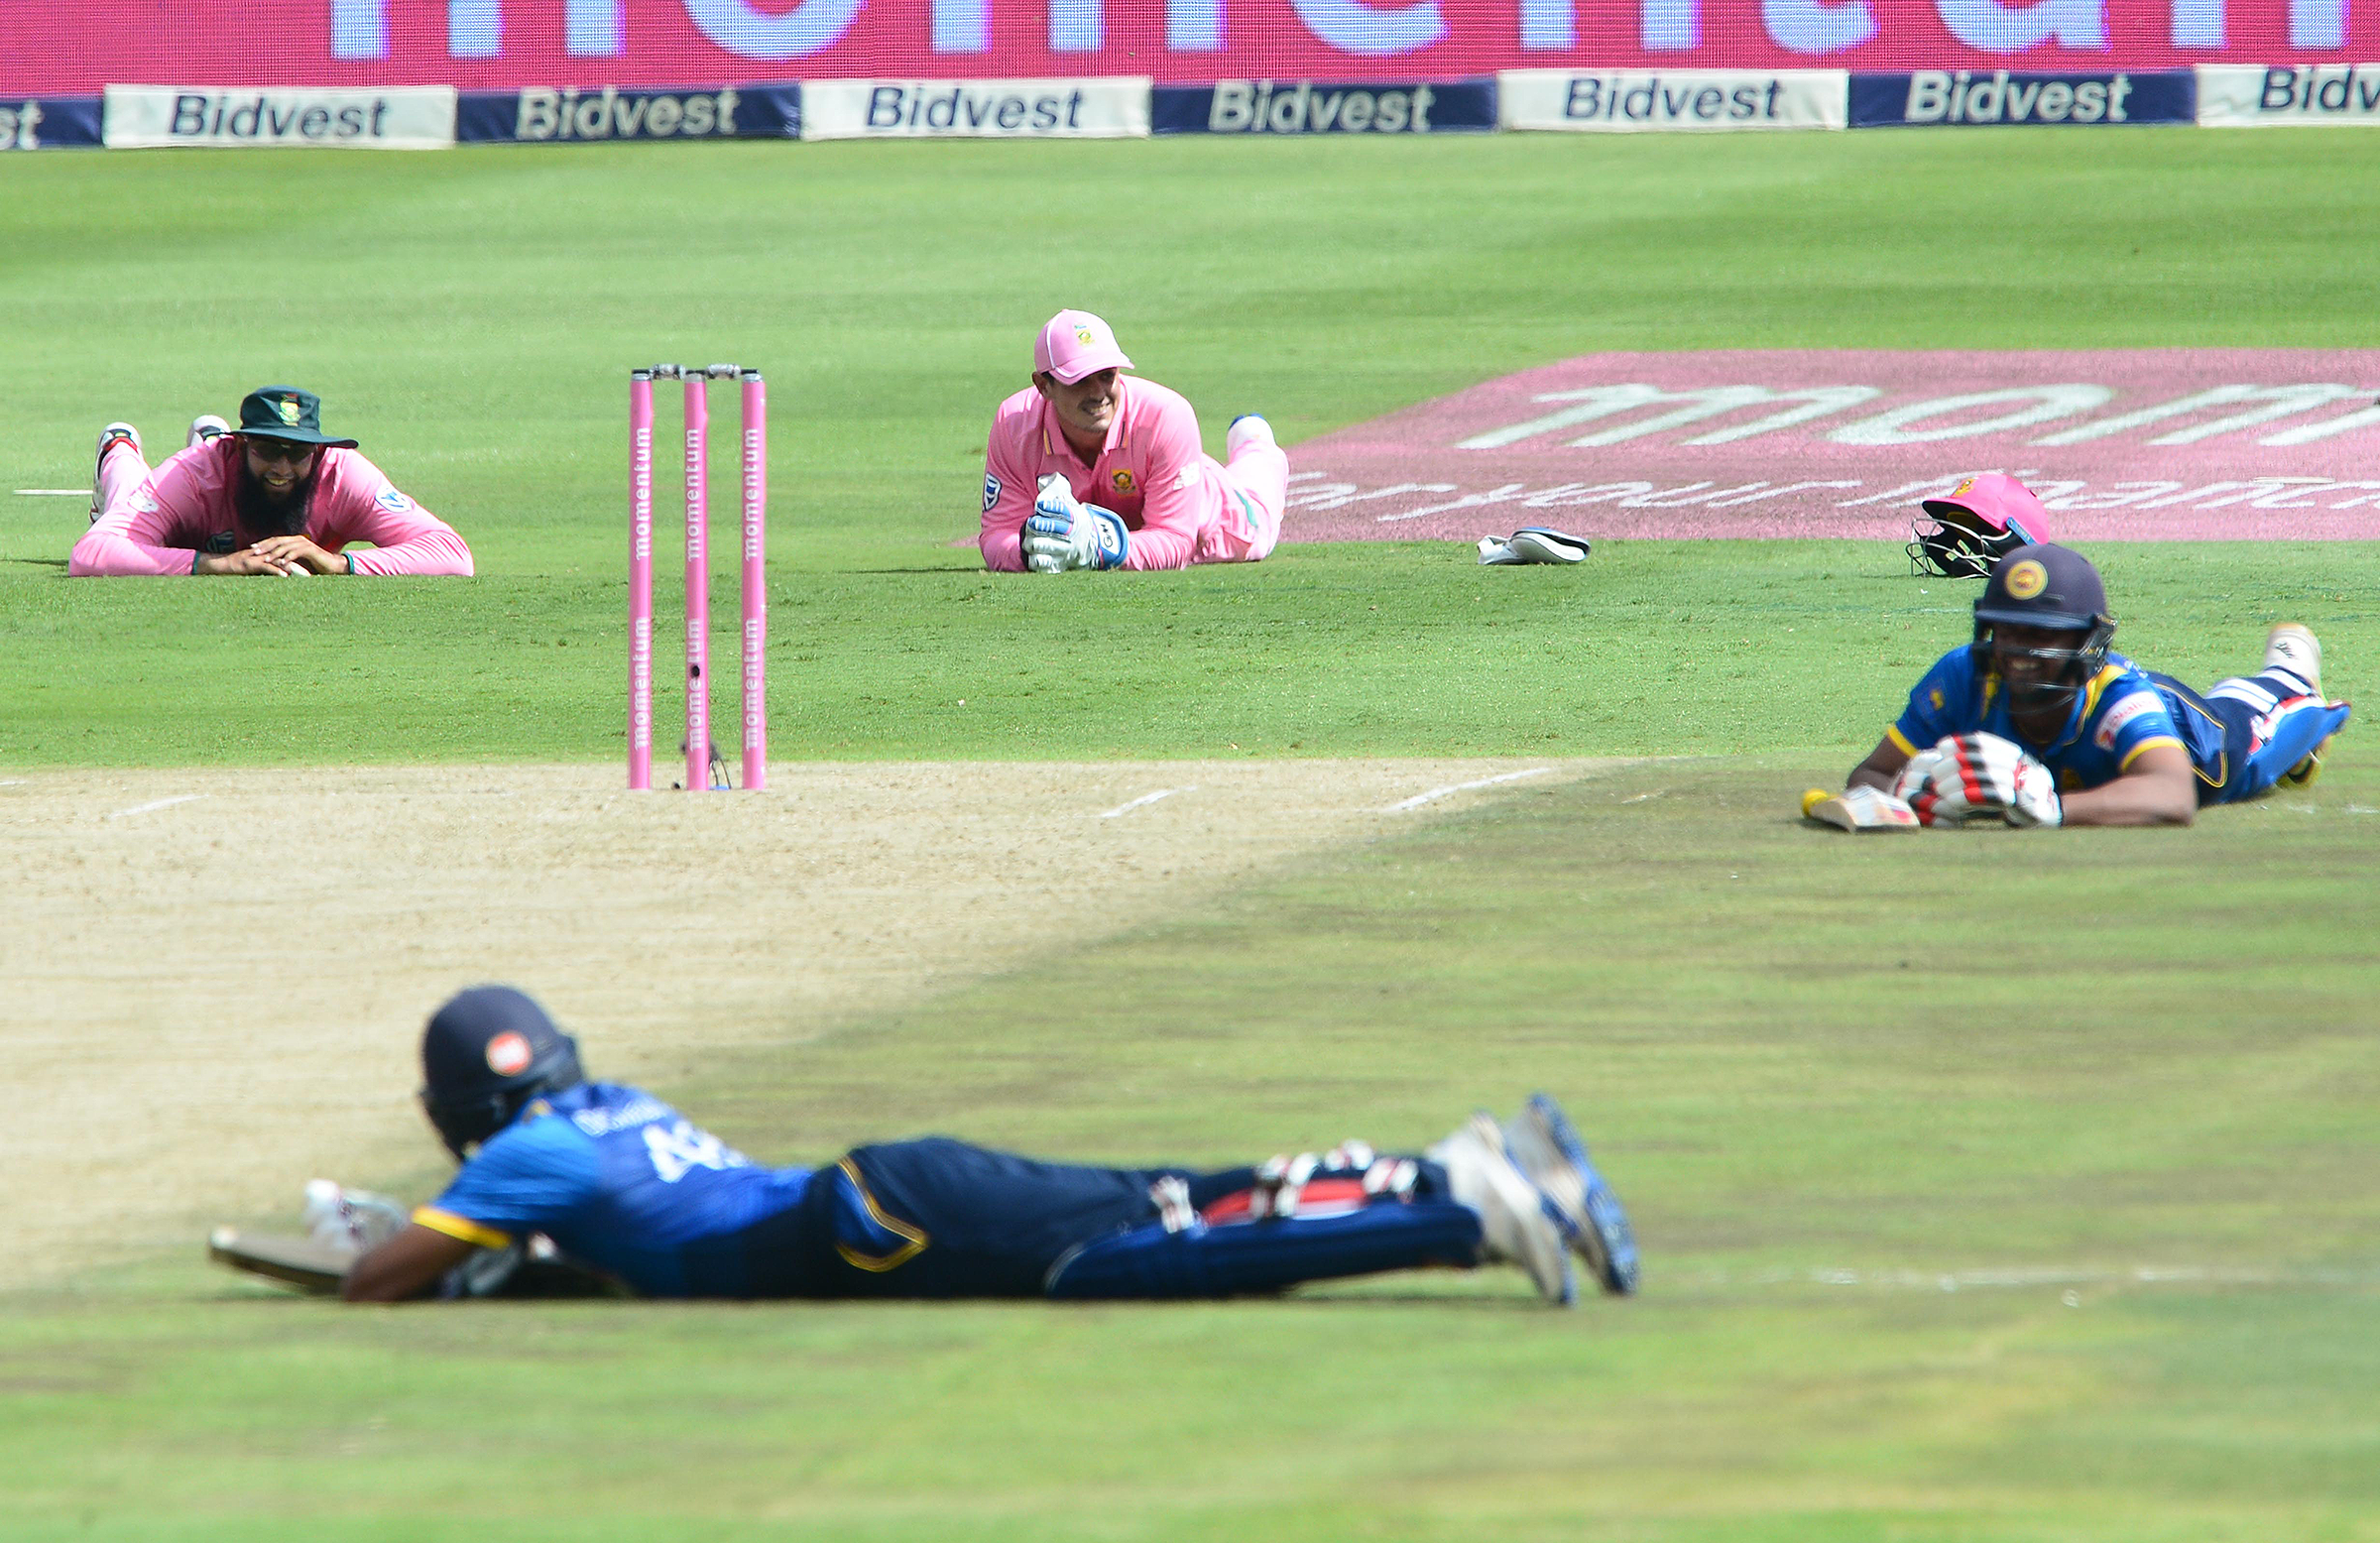 Players duck for cover as bees swarm The Wanderers // Getty